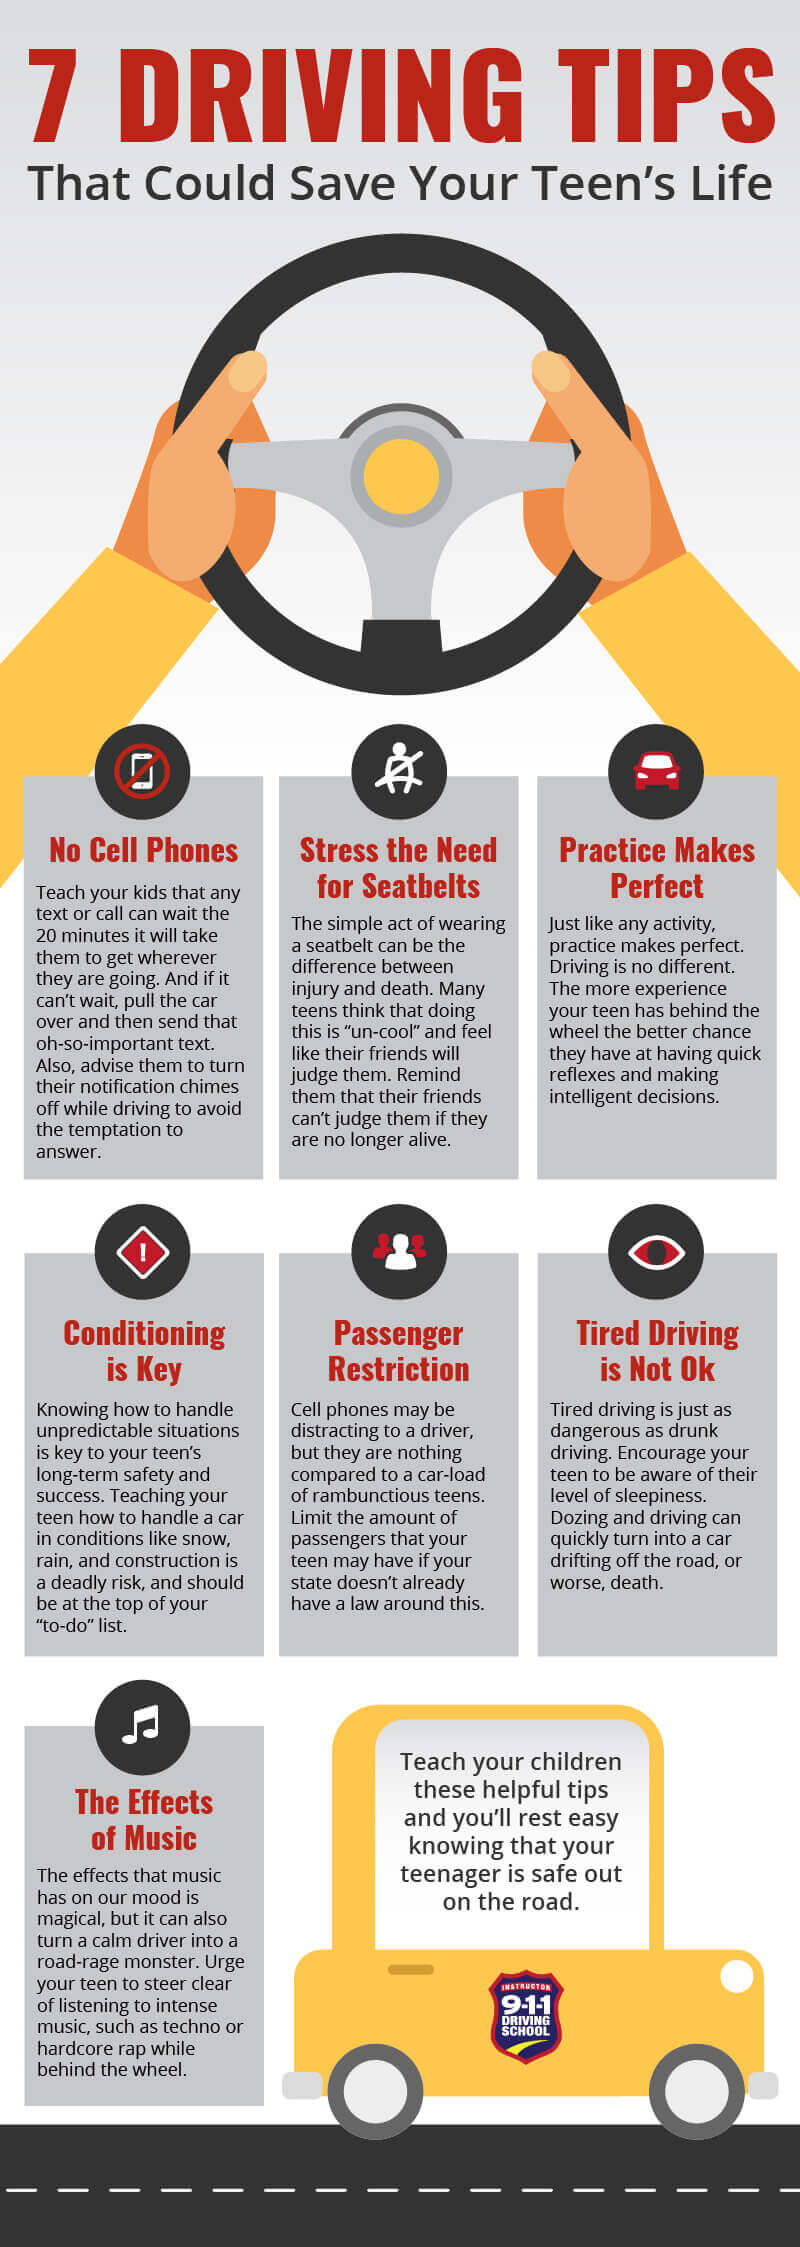 Driving Tips for teens